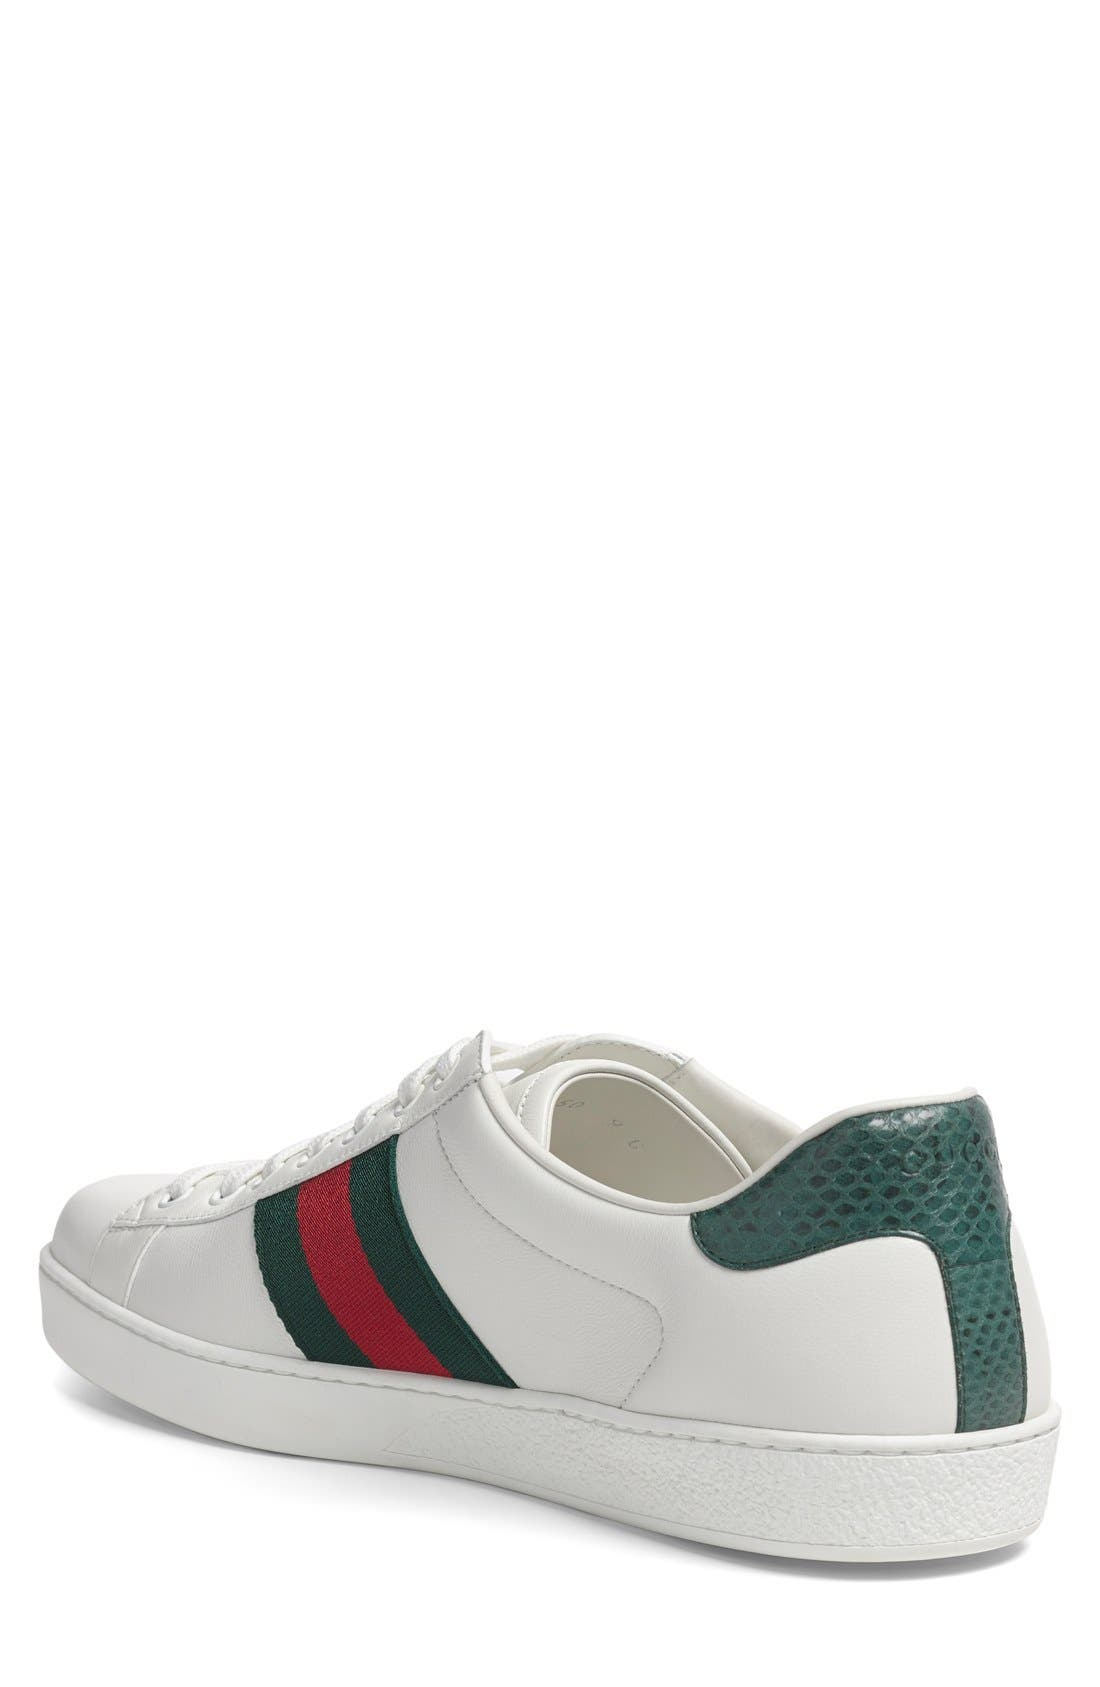 GUCCI, New Ace Sneaker, Alternate thumbnail 2, color, WHITE LEATHER